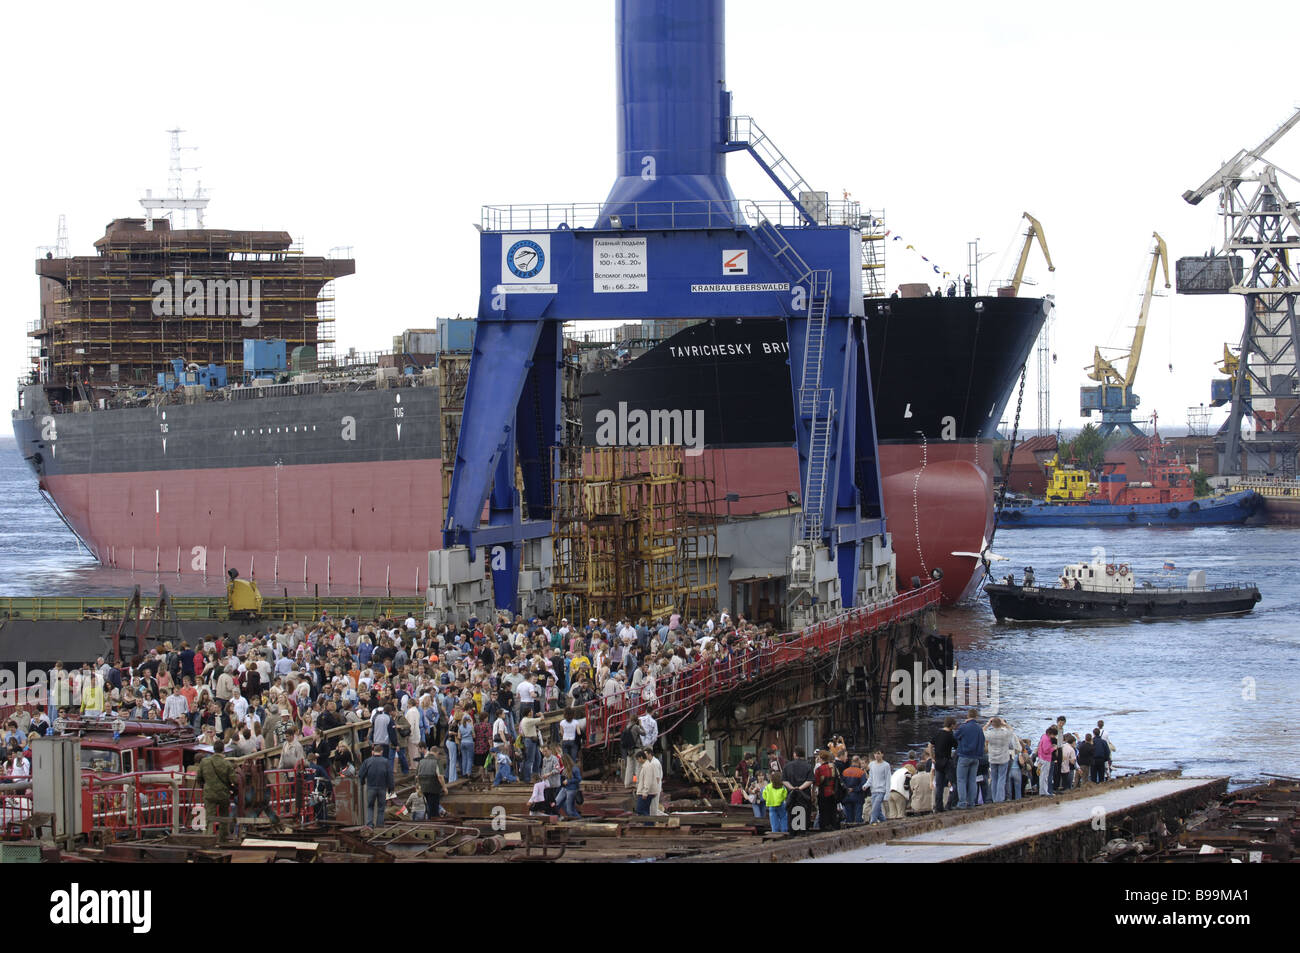 The Admiralty Wharf St Petersburg launches the tanker Tavrichesky Bridge in a gala - Stock Image